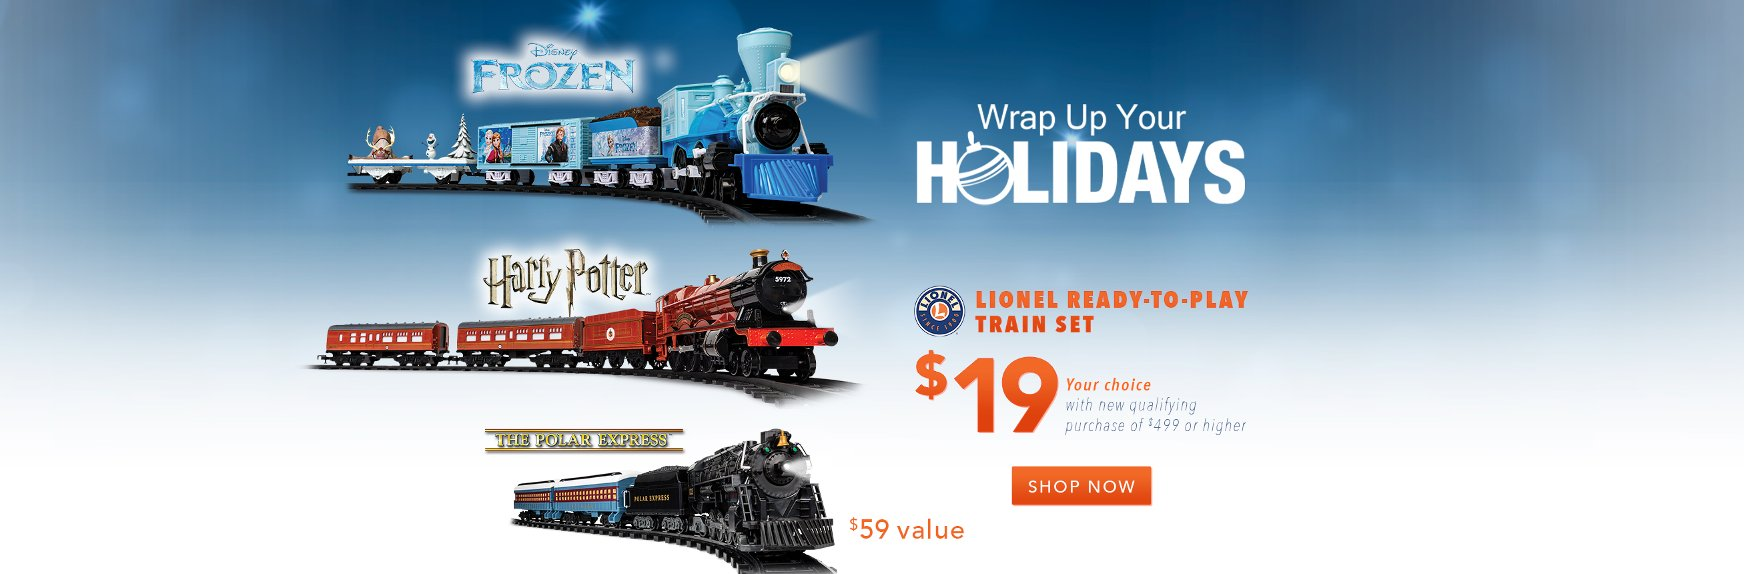 Lionel Read-to-Play Train Set for $19 with New Qualifying Purchase of $499 or Higher